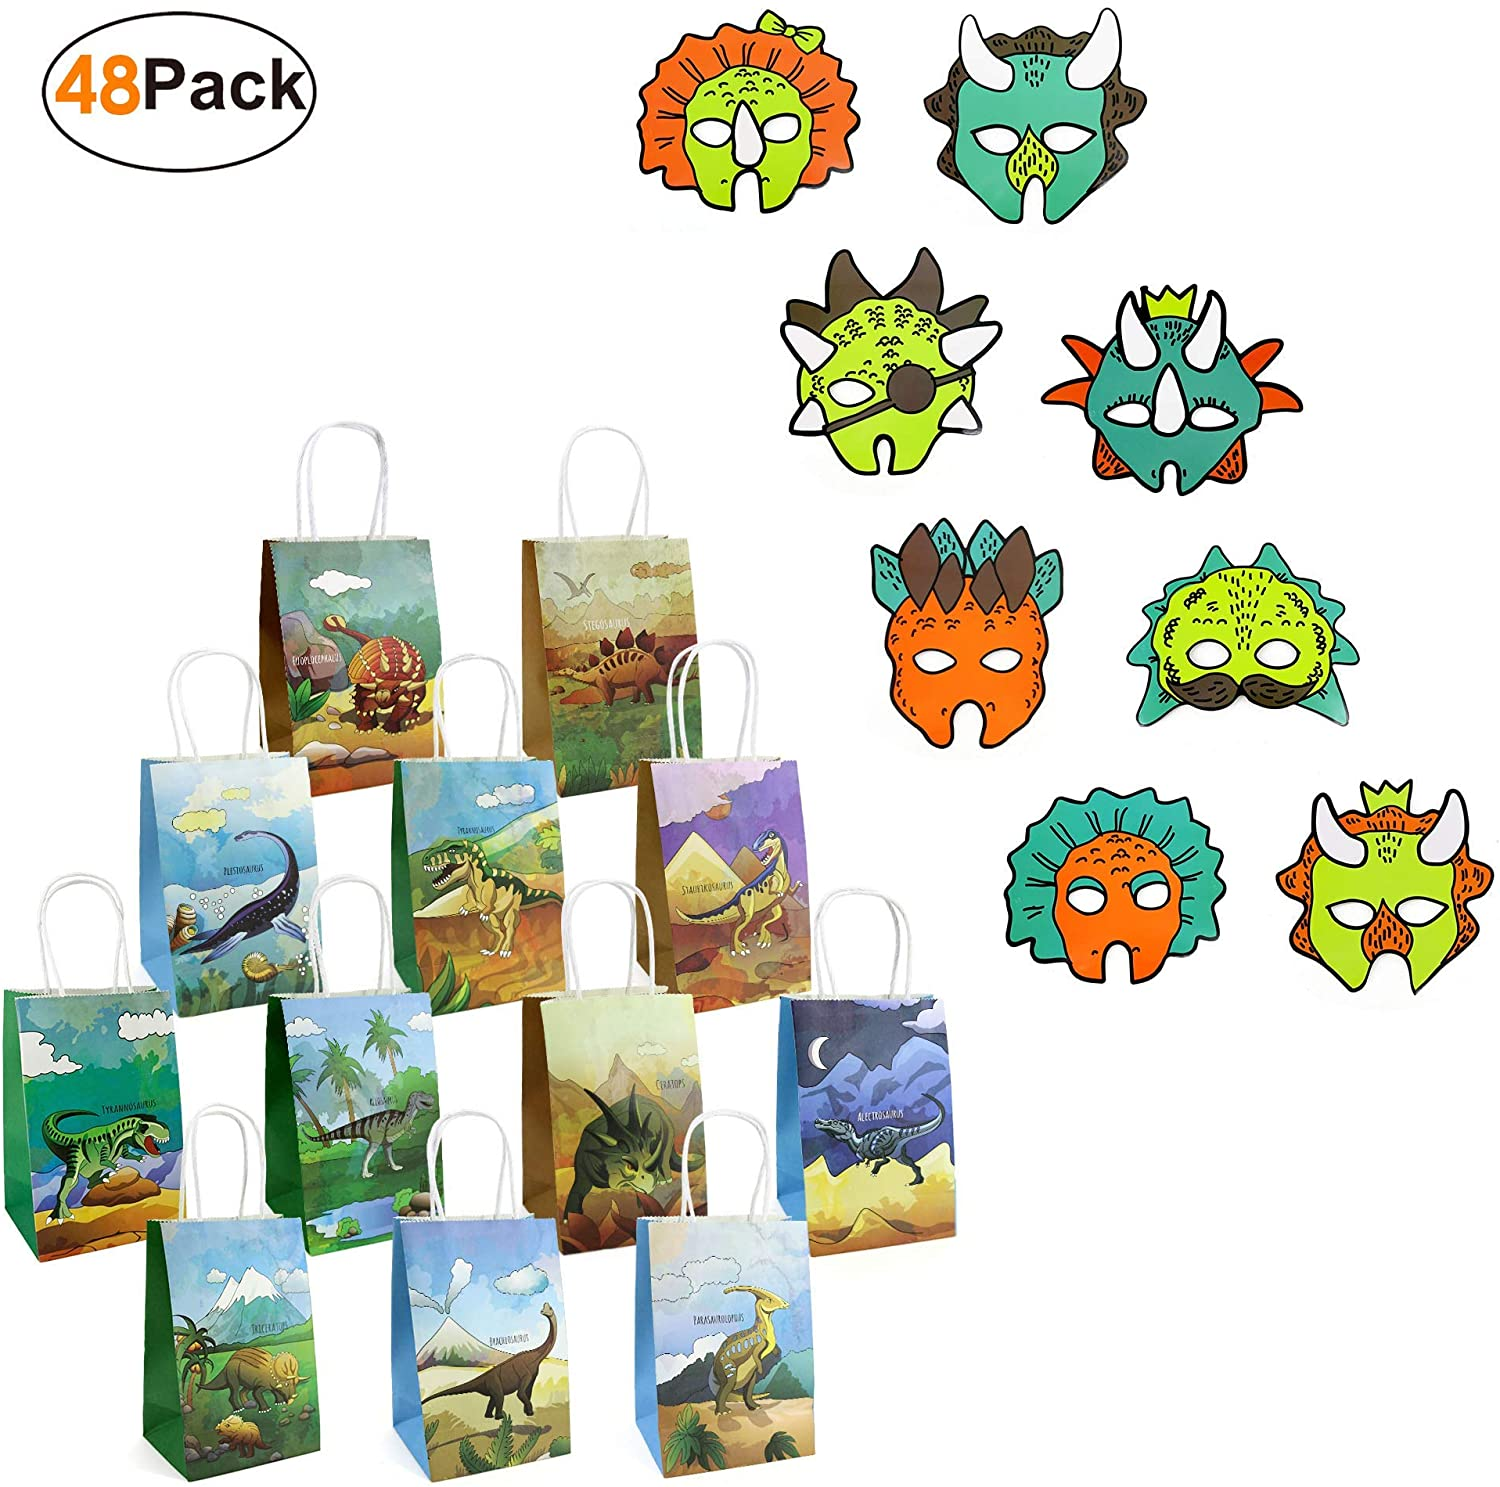 24 Pieces Dinosaur Party Supplies Favor Paper Bags and Dino Masks Set of 24 Birthday Accessories for Kids Boys Girls Jurassic World Party